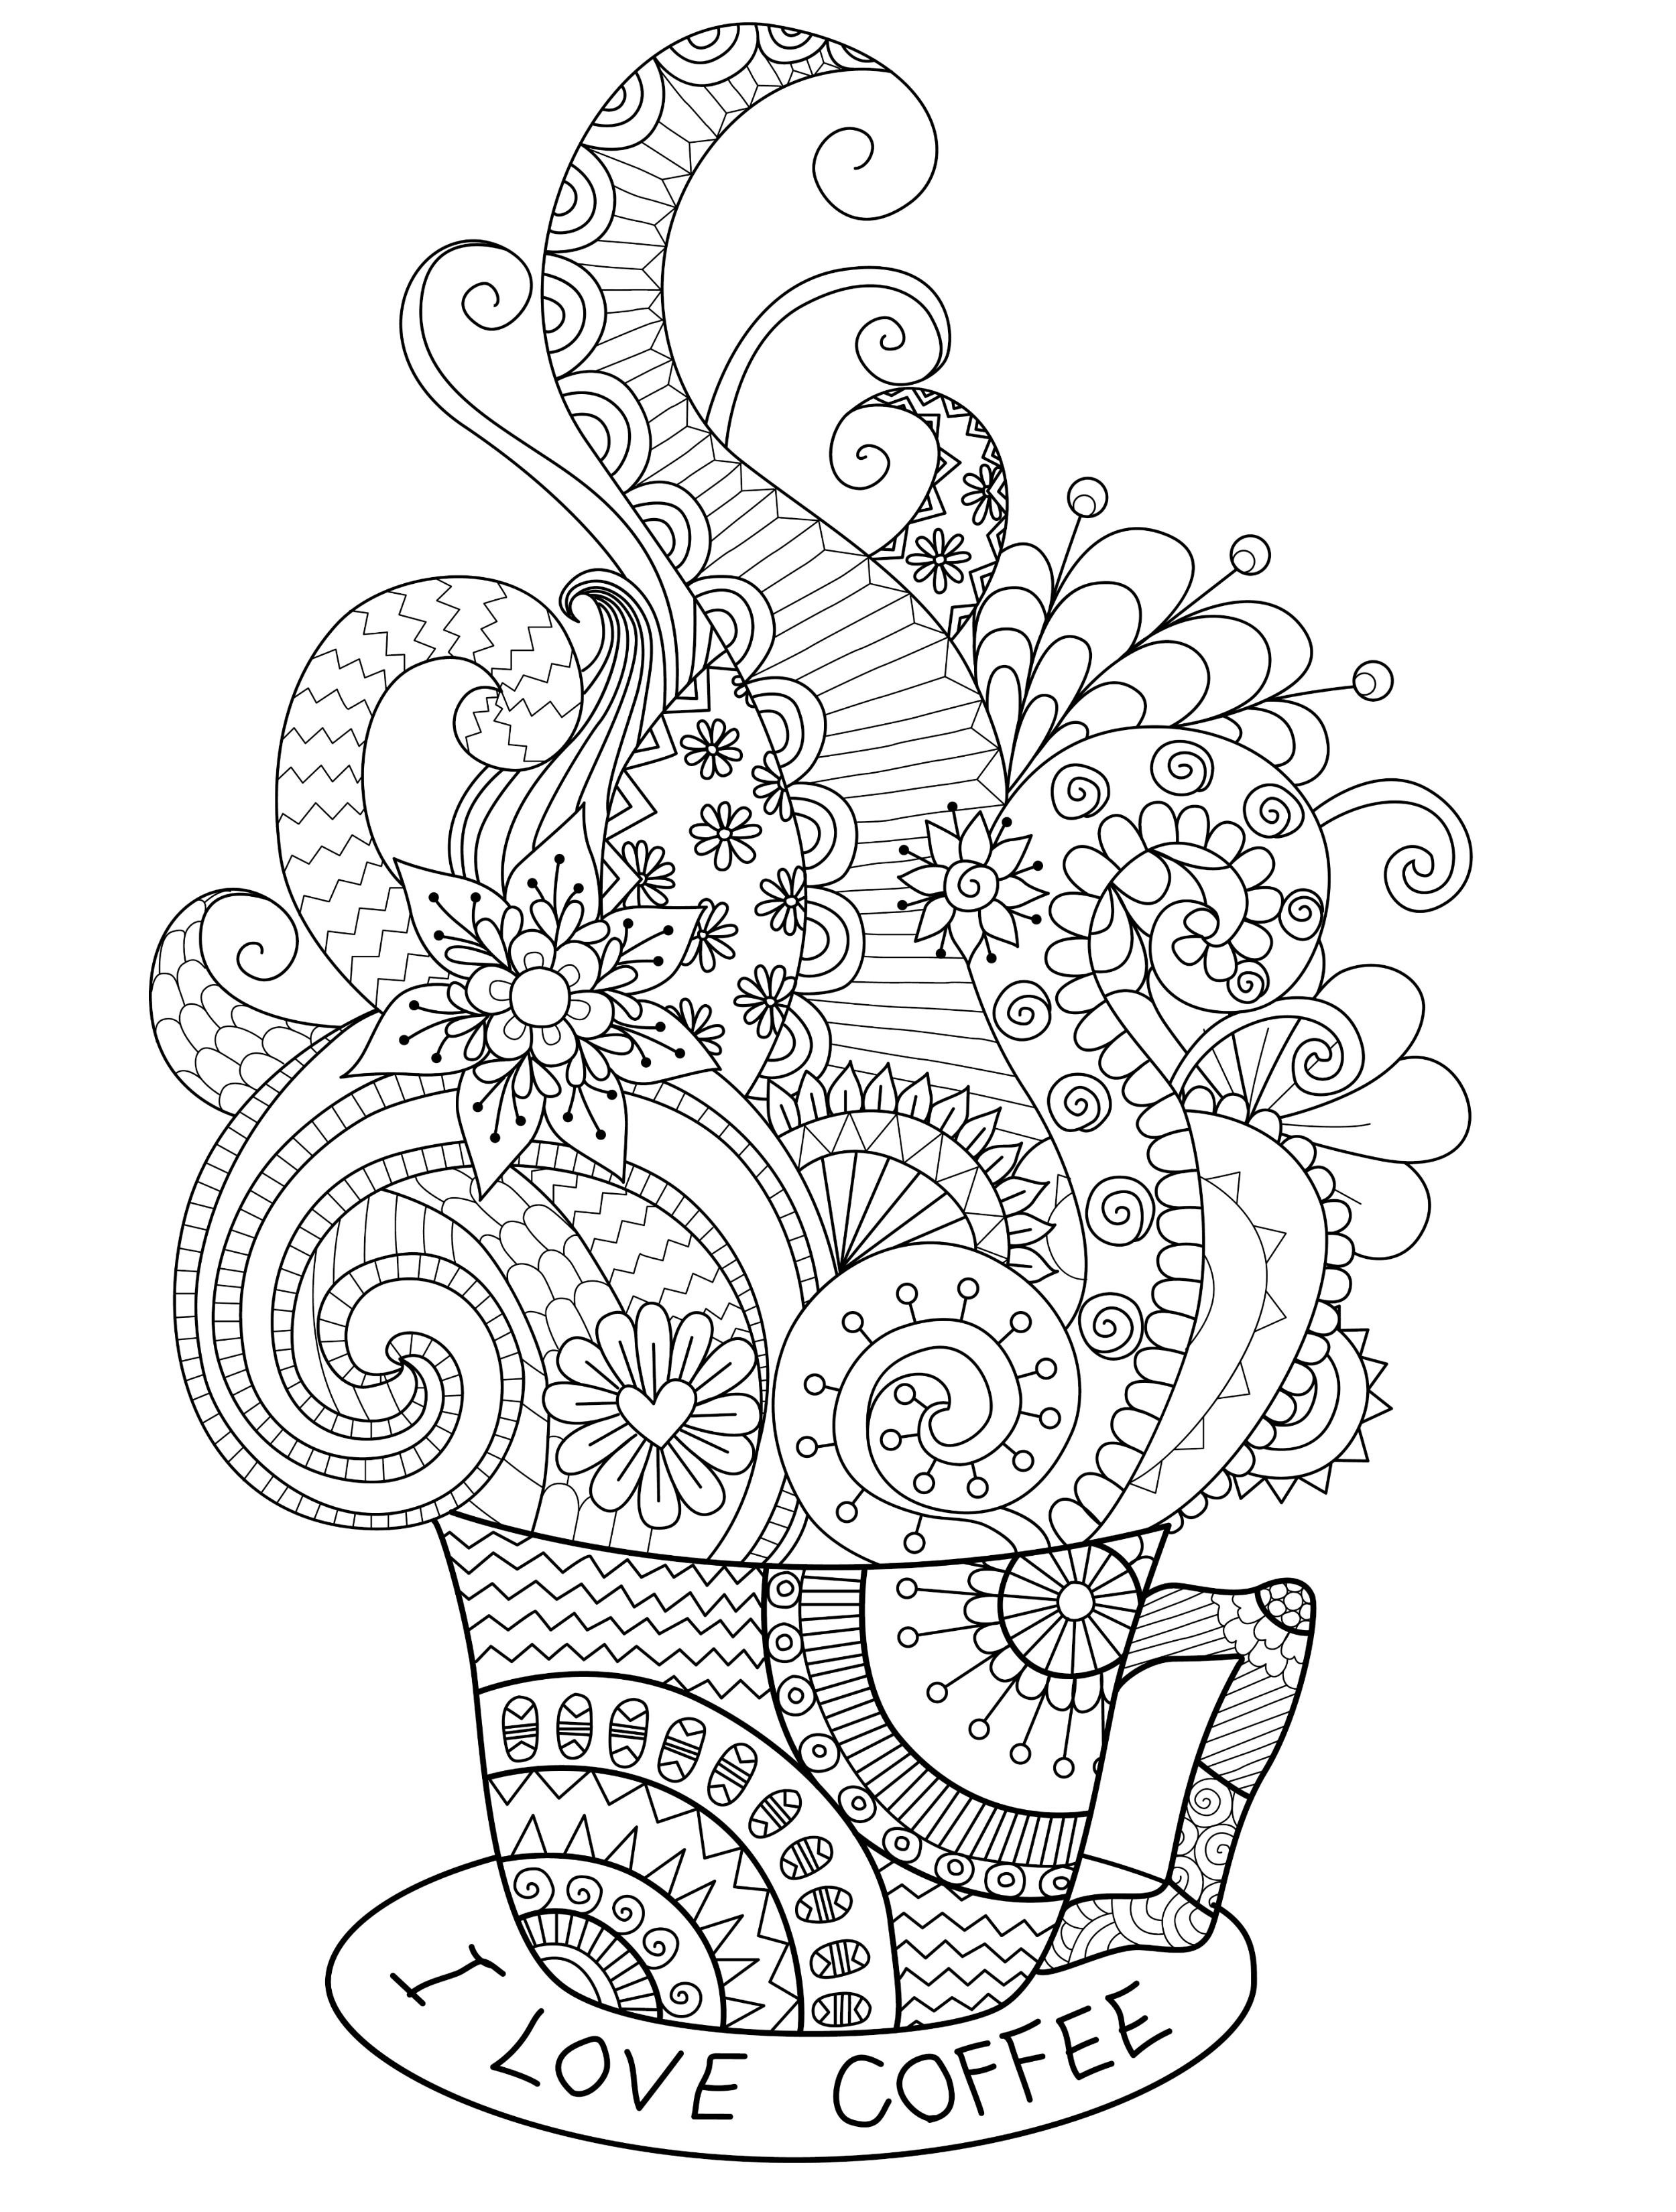 i love coffee adult coloring page you can print for free Coloring